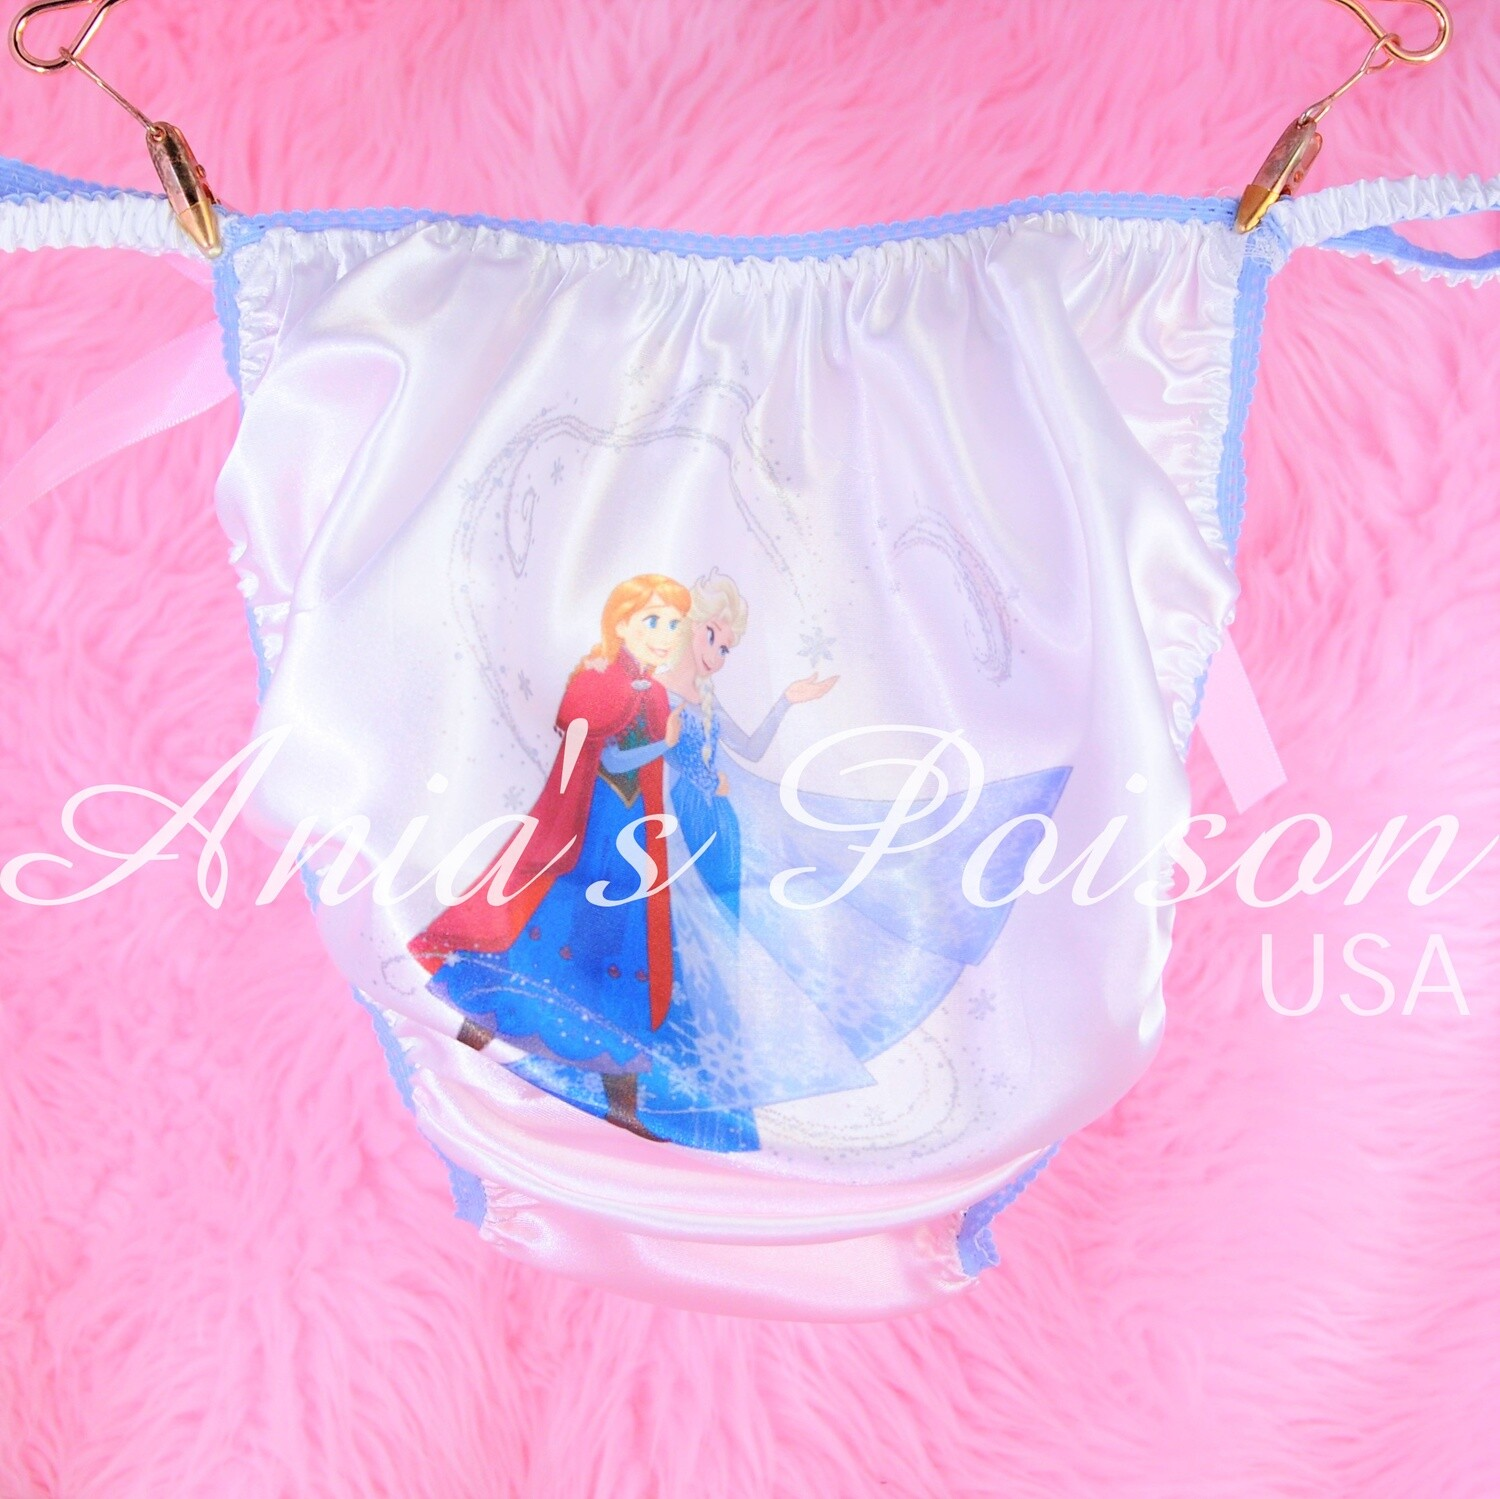 White Rare FROZEN Anna Elsa Magic classic shiny Satin string bikini panties - Sissy Princess RARE